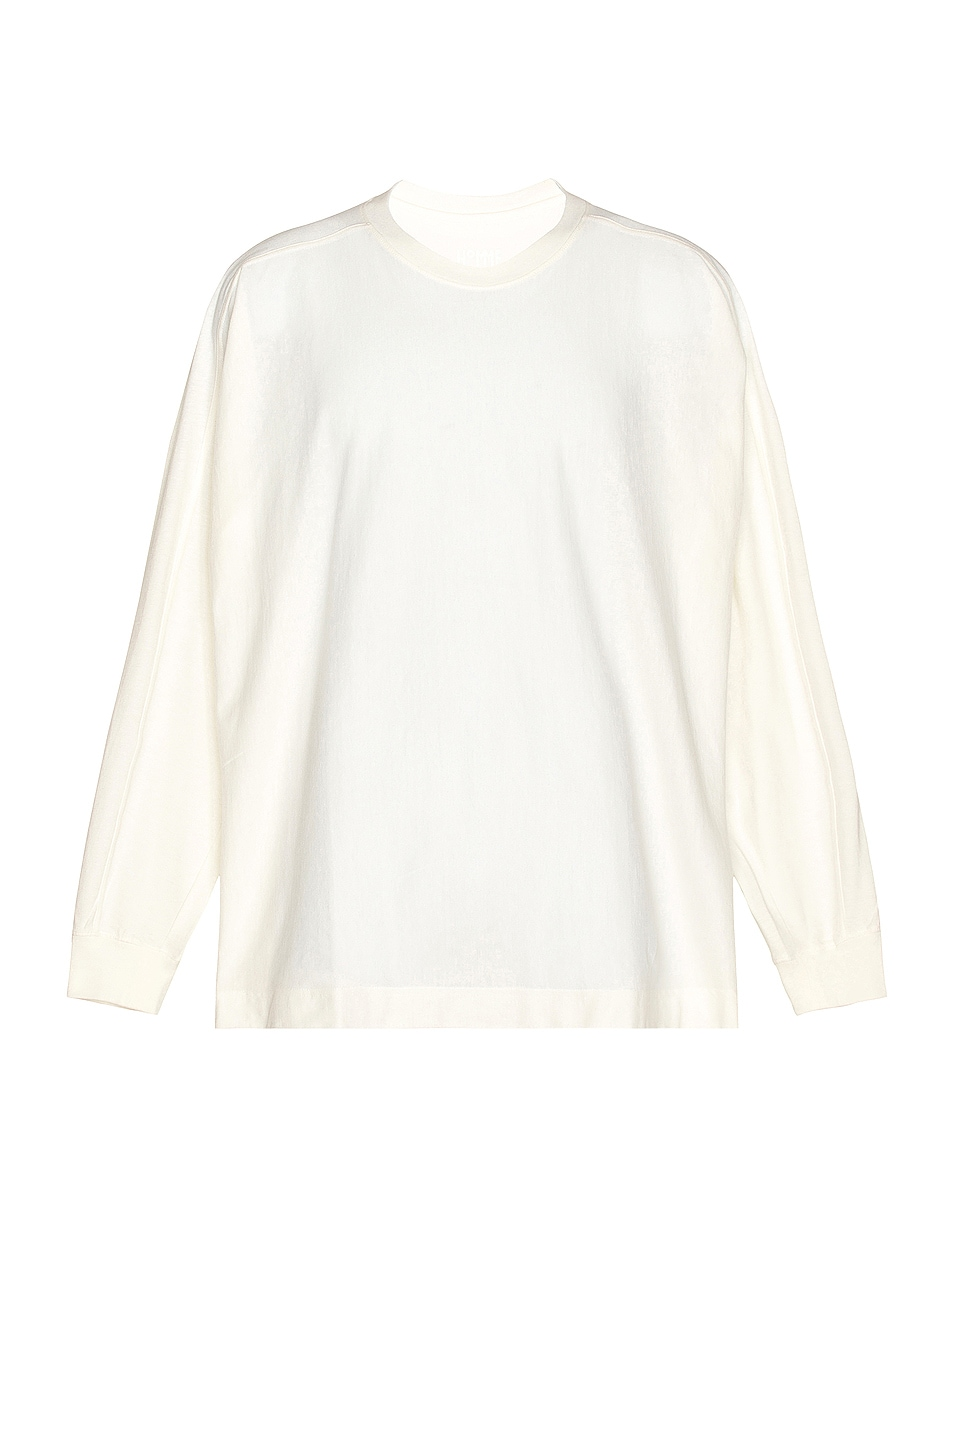 Image 1 of Homme Plisse Issey Miyake Release Tee in White